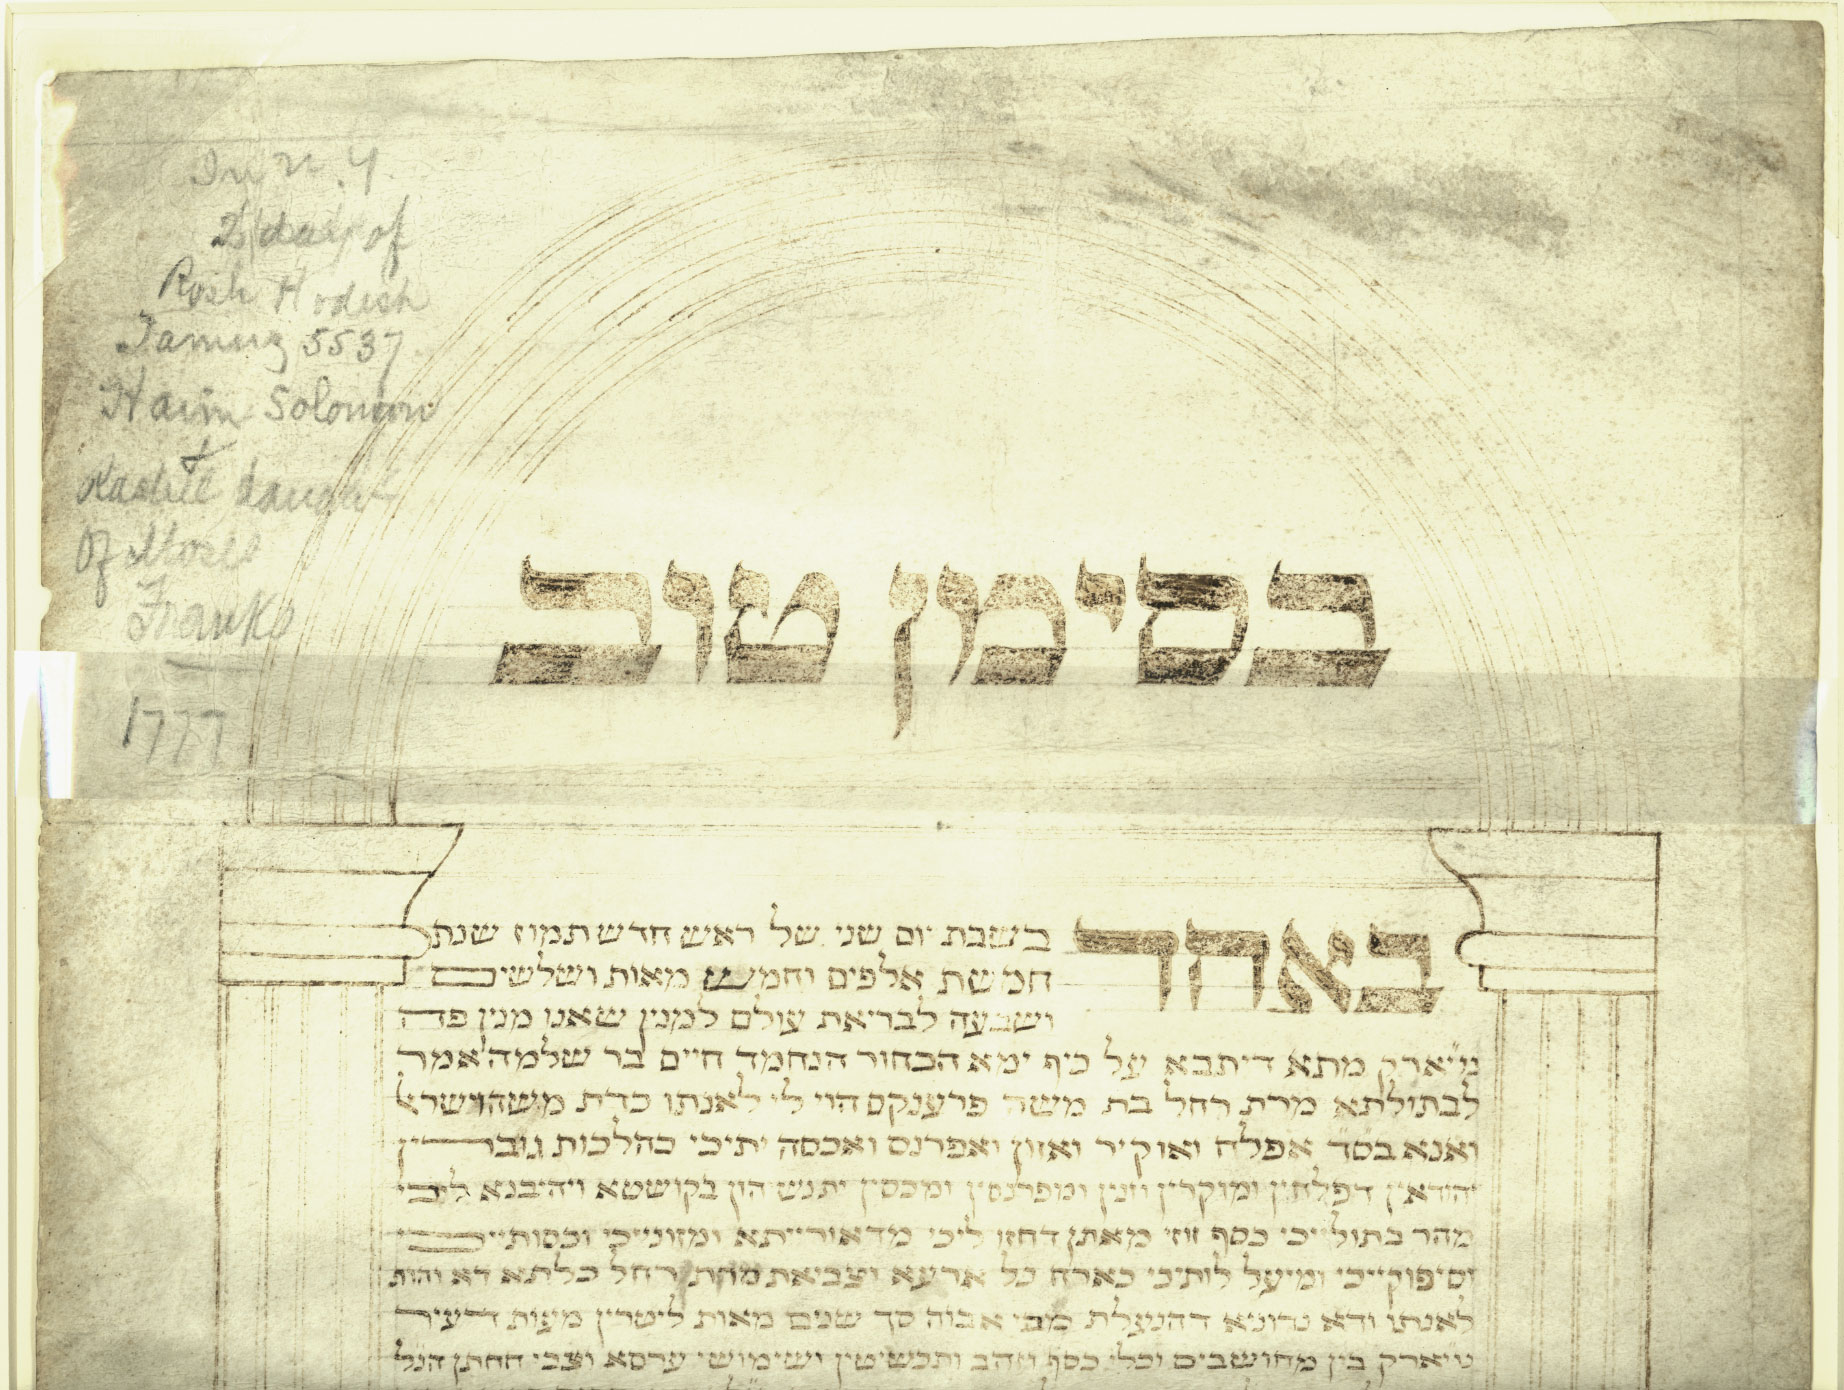 Ketubah (marriage contract) of Haym Salomon and Rachel Franks.